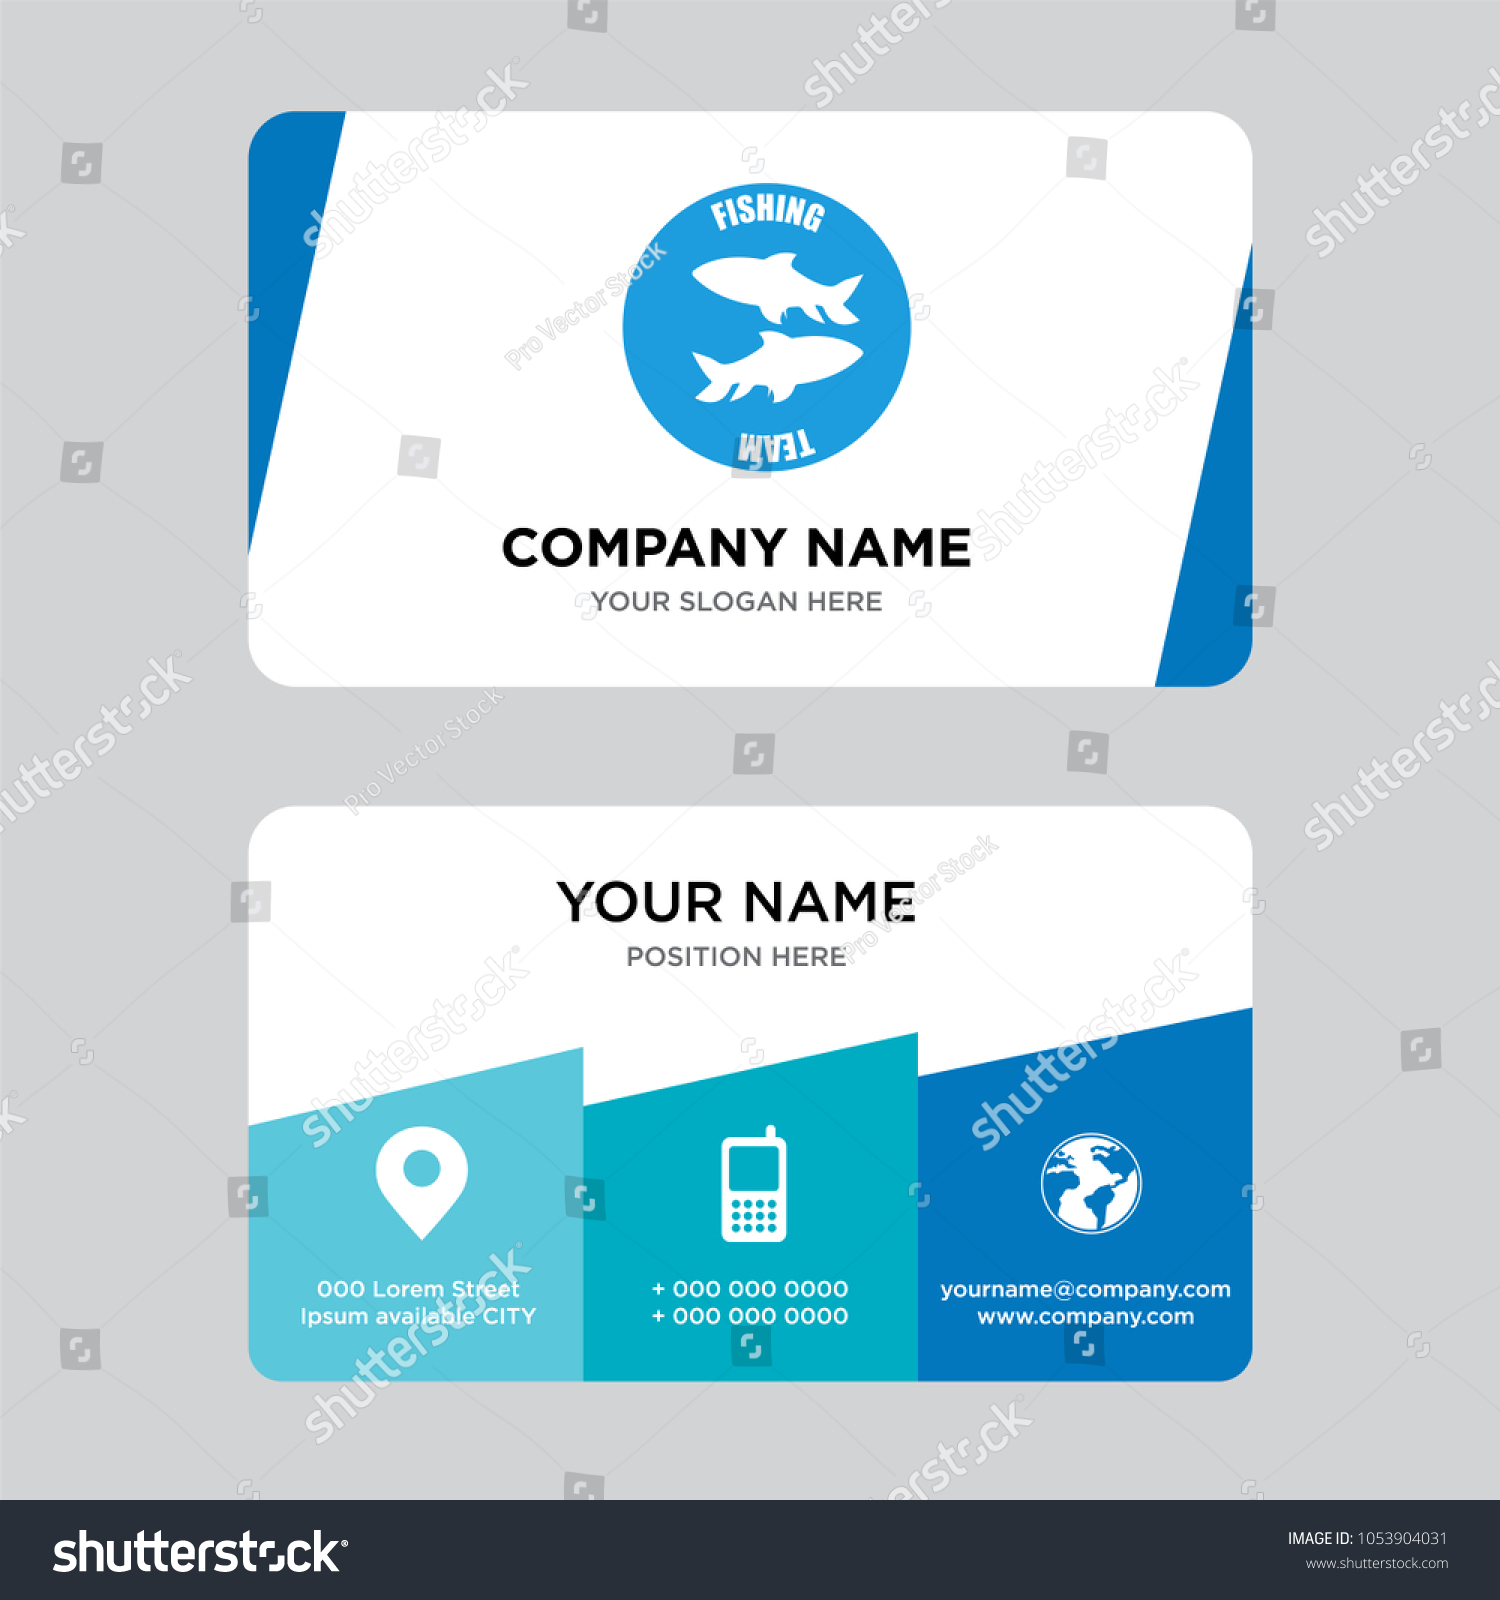 Fishing Team Business Card Design Template Stock Vector (2018 ...